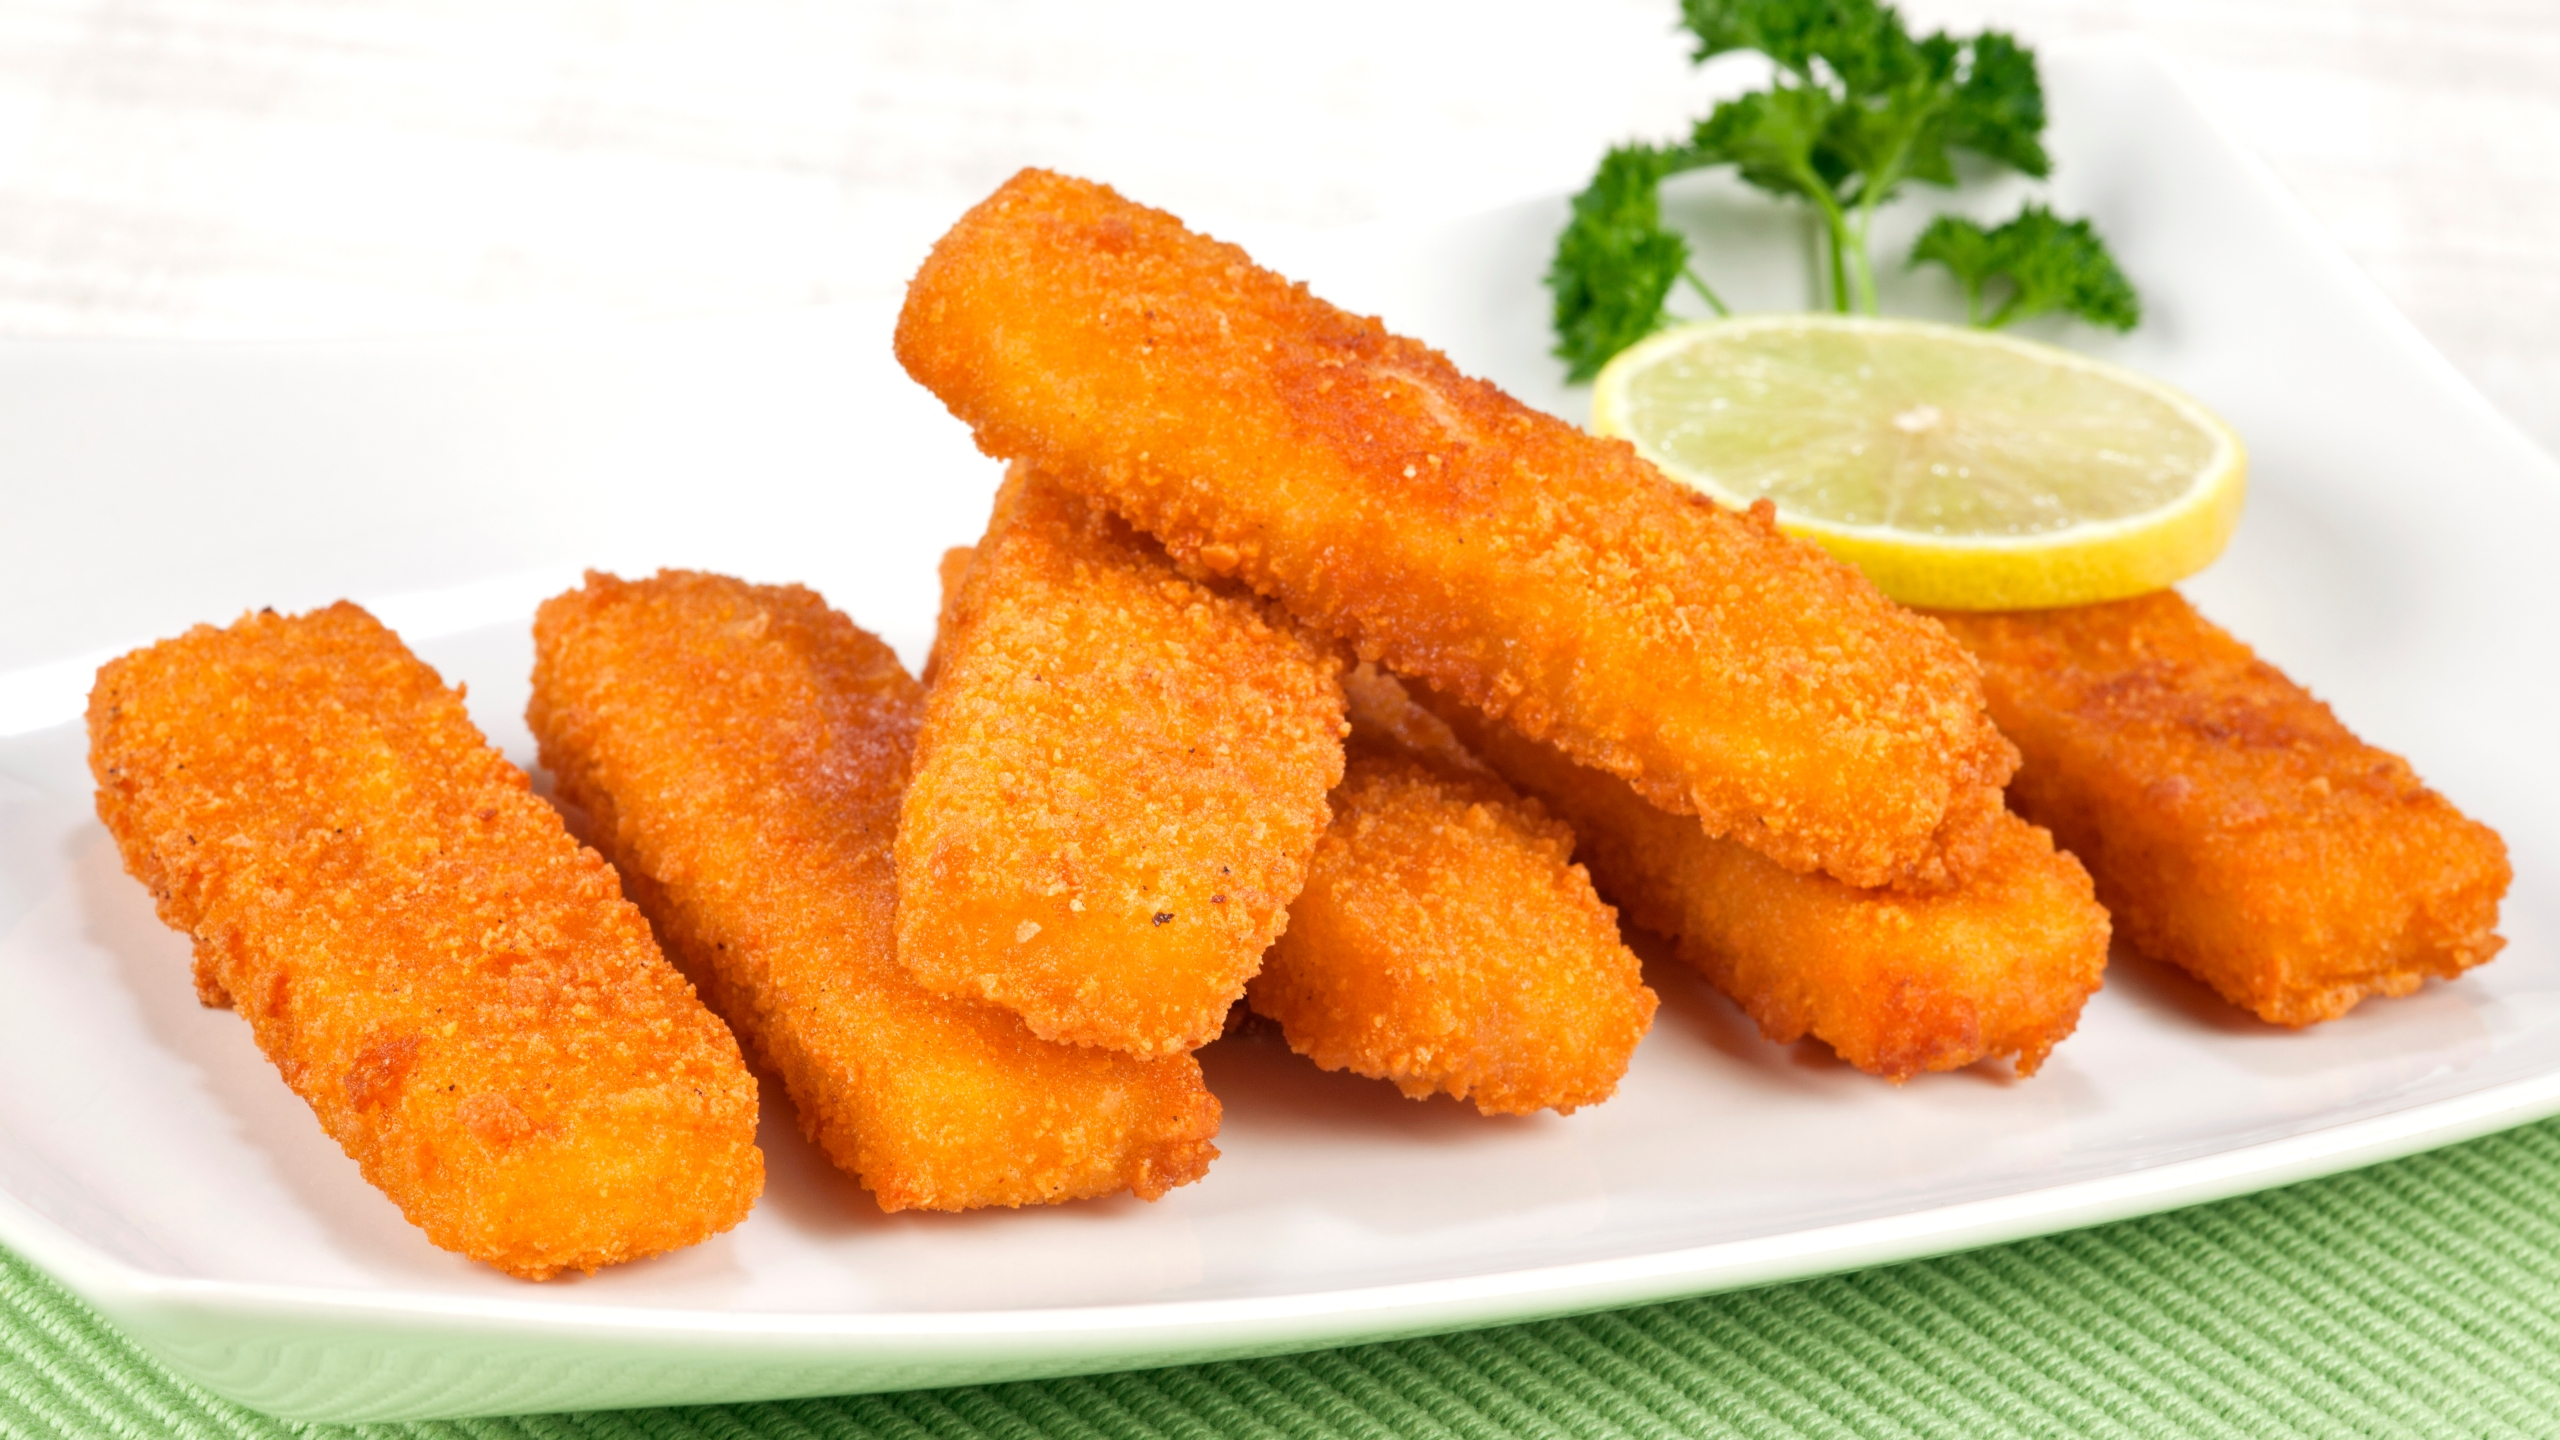 Fried fish fingers on plate. Selective focus, shallow DOF.